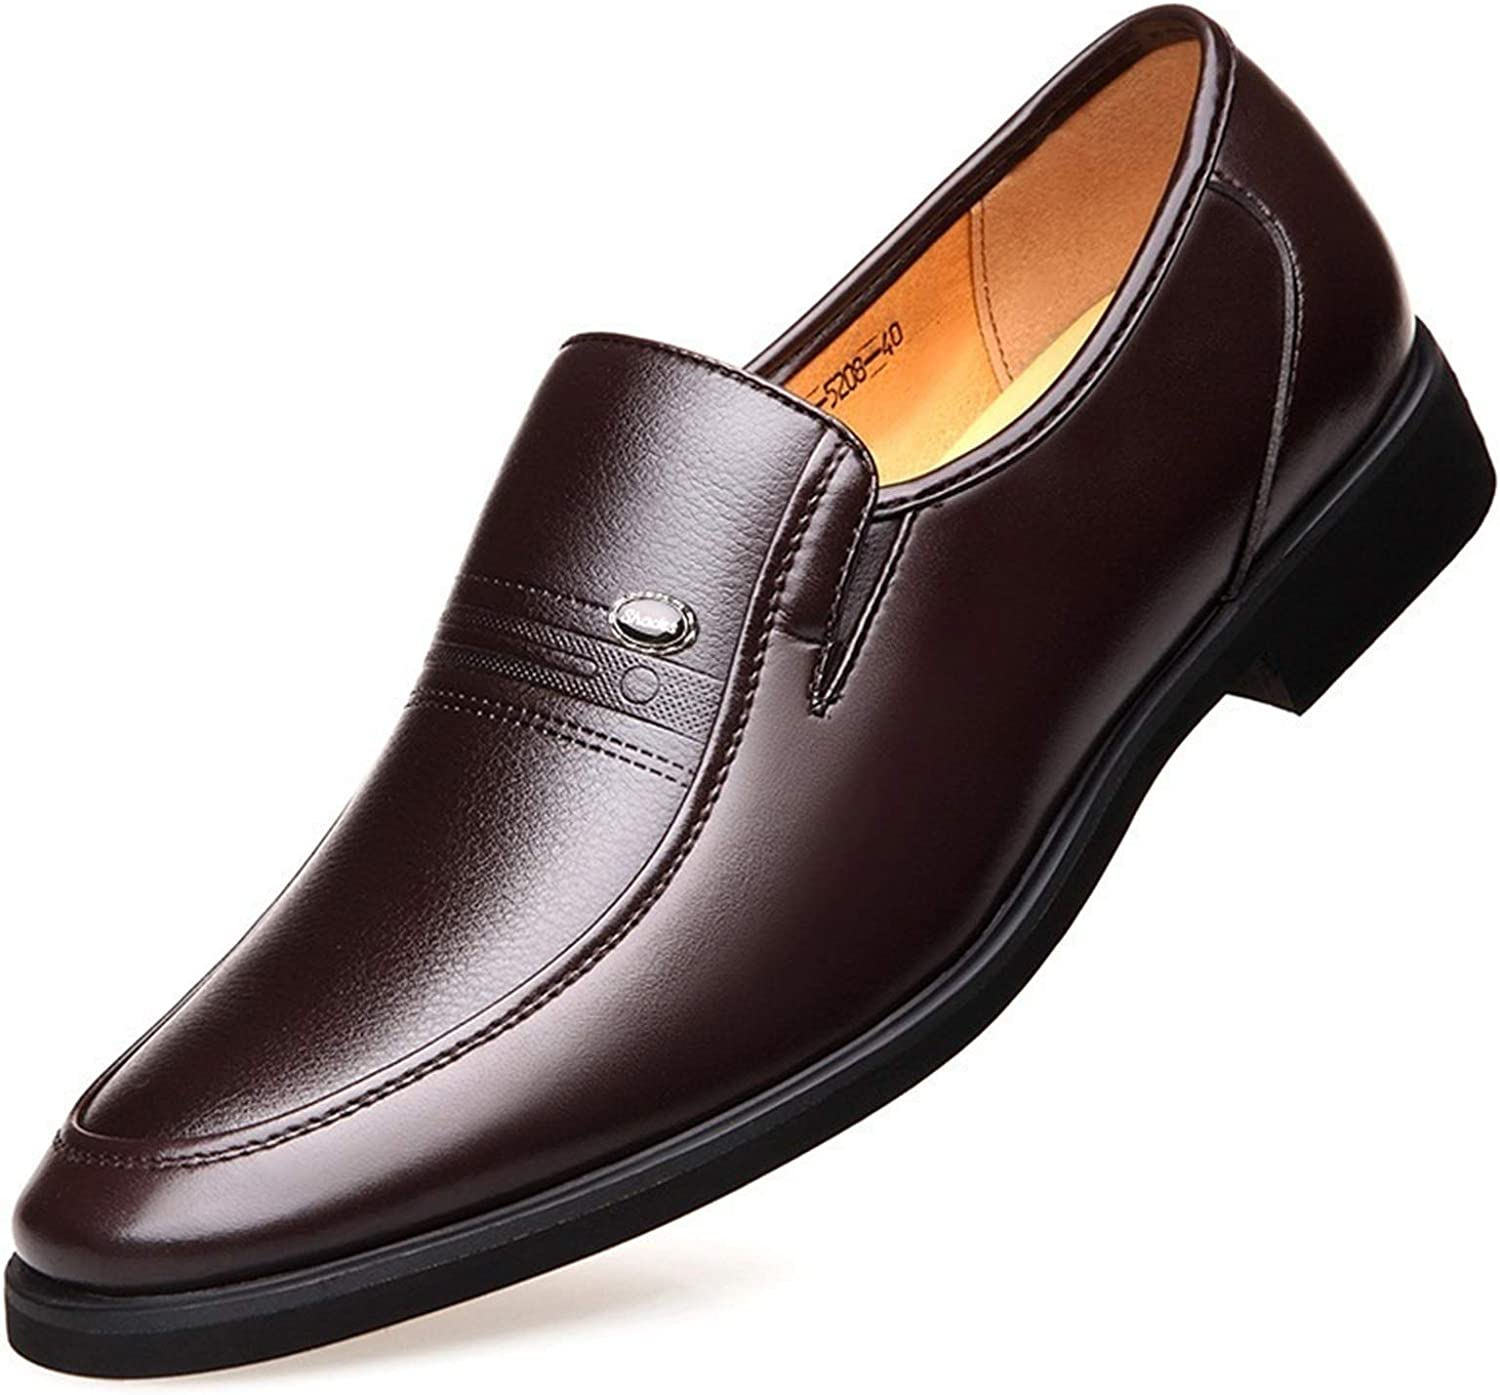 Men's Oxford Cloth Leather Shoes, Classic Business Solid Color Fashion, Round Toe Elastic Band Elastic Heel Men's Casual Shoes (Color : Brown, Size : 44 EU)